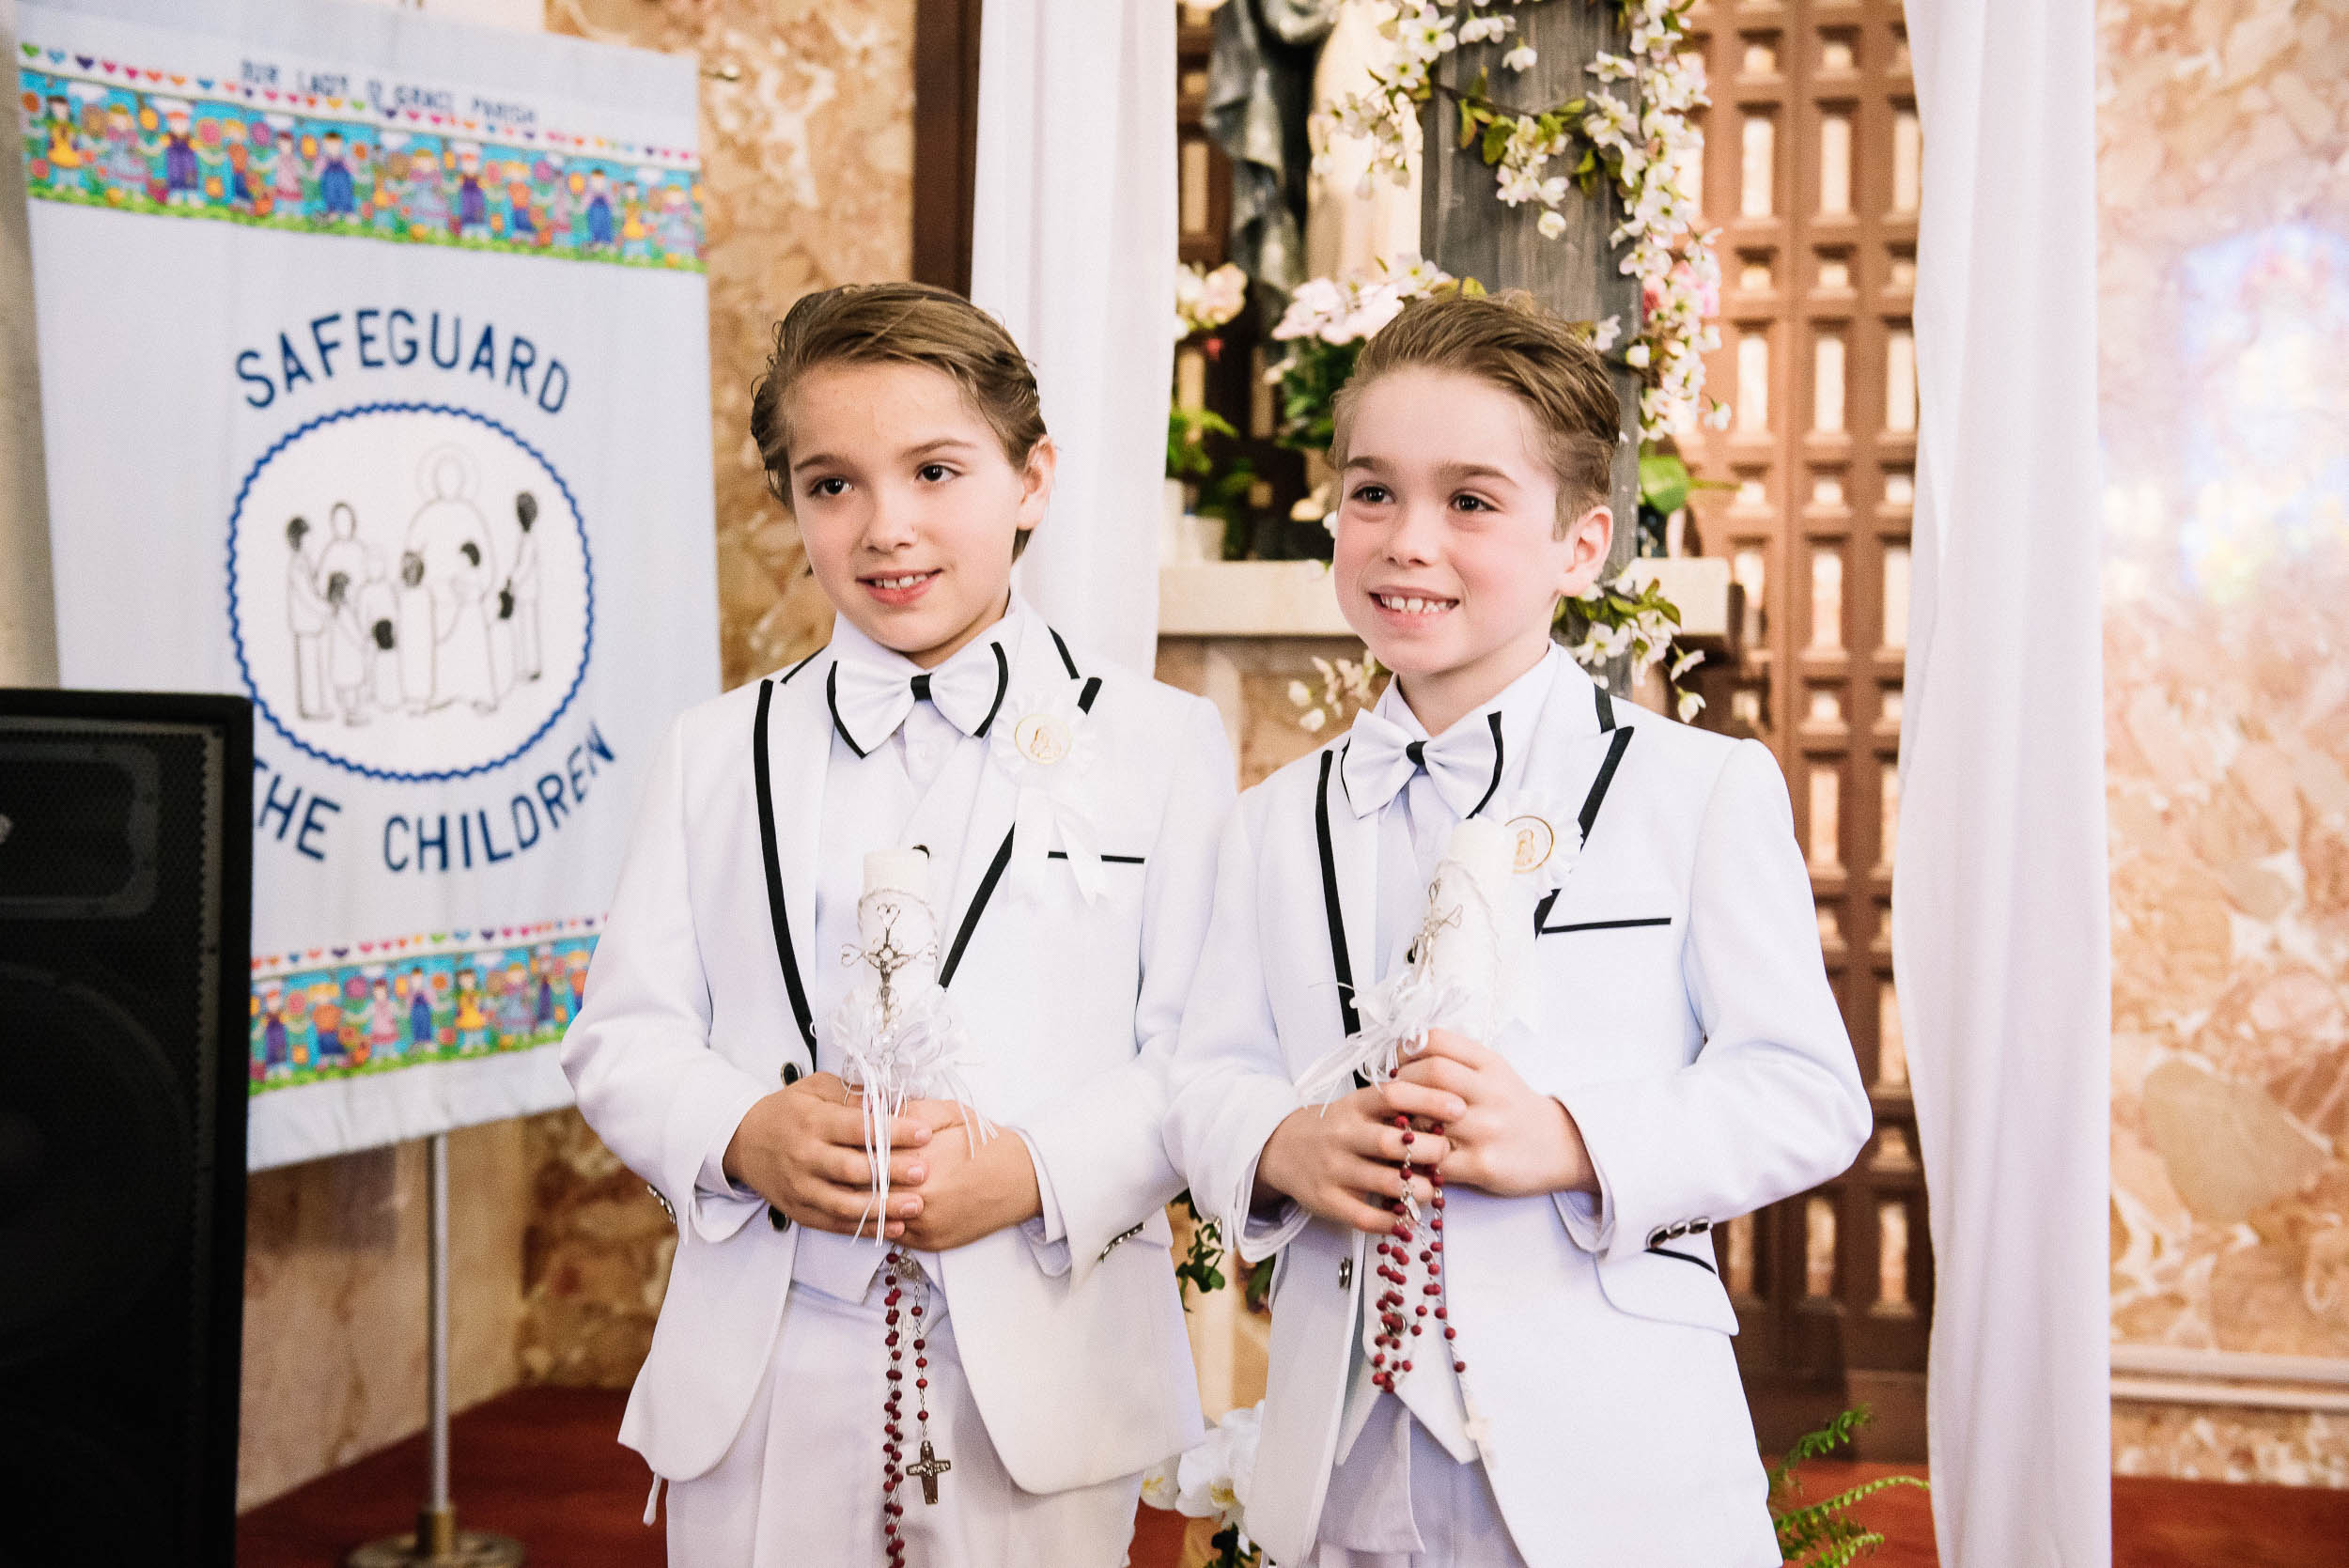 Bryan-Miraflor-Photography-First-Communion-Our-Lady-of-Grace-Church-20160501-0073.jpg